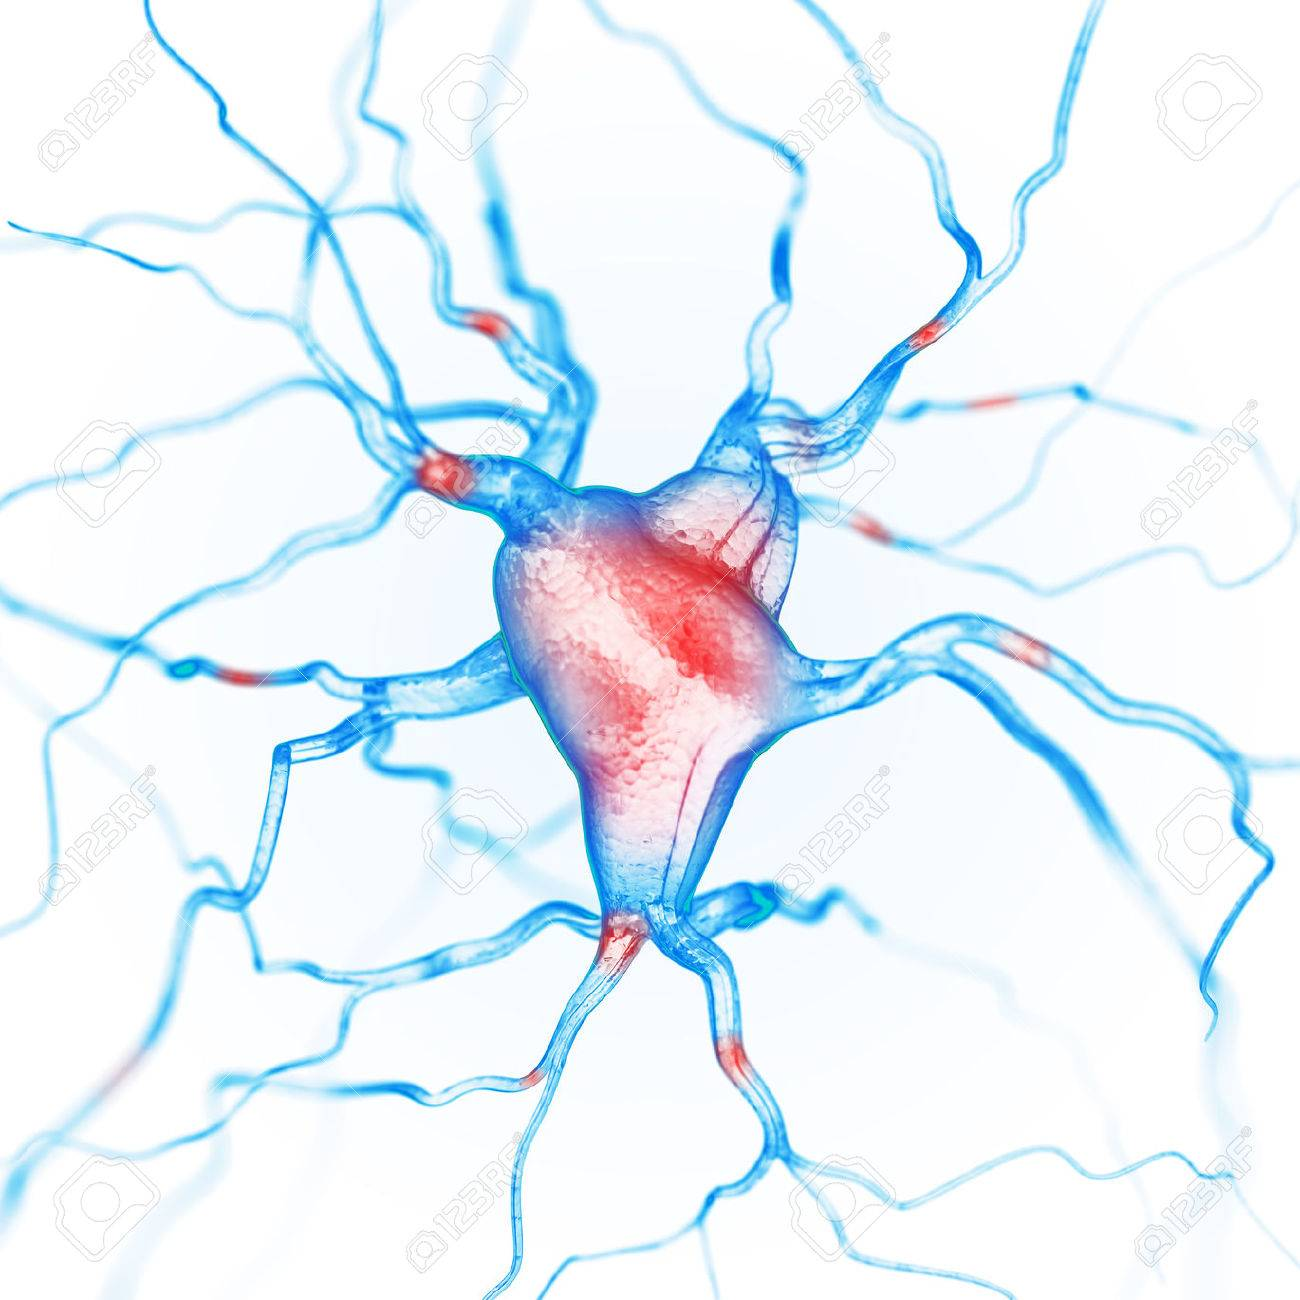 Neurons abstract background - 43149843